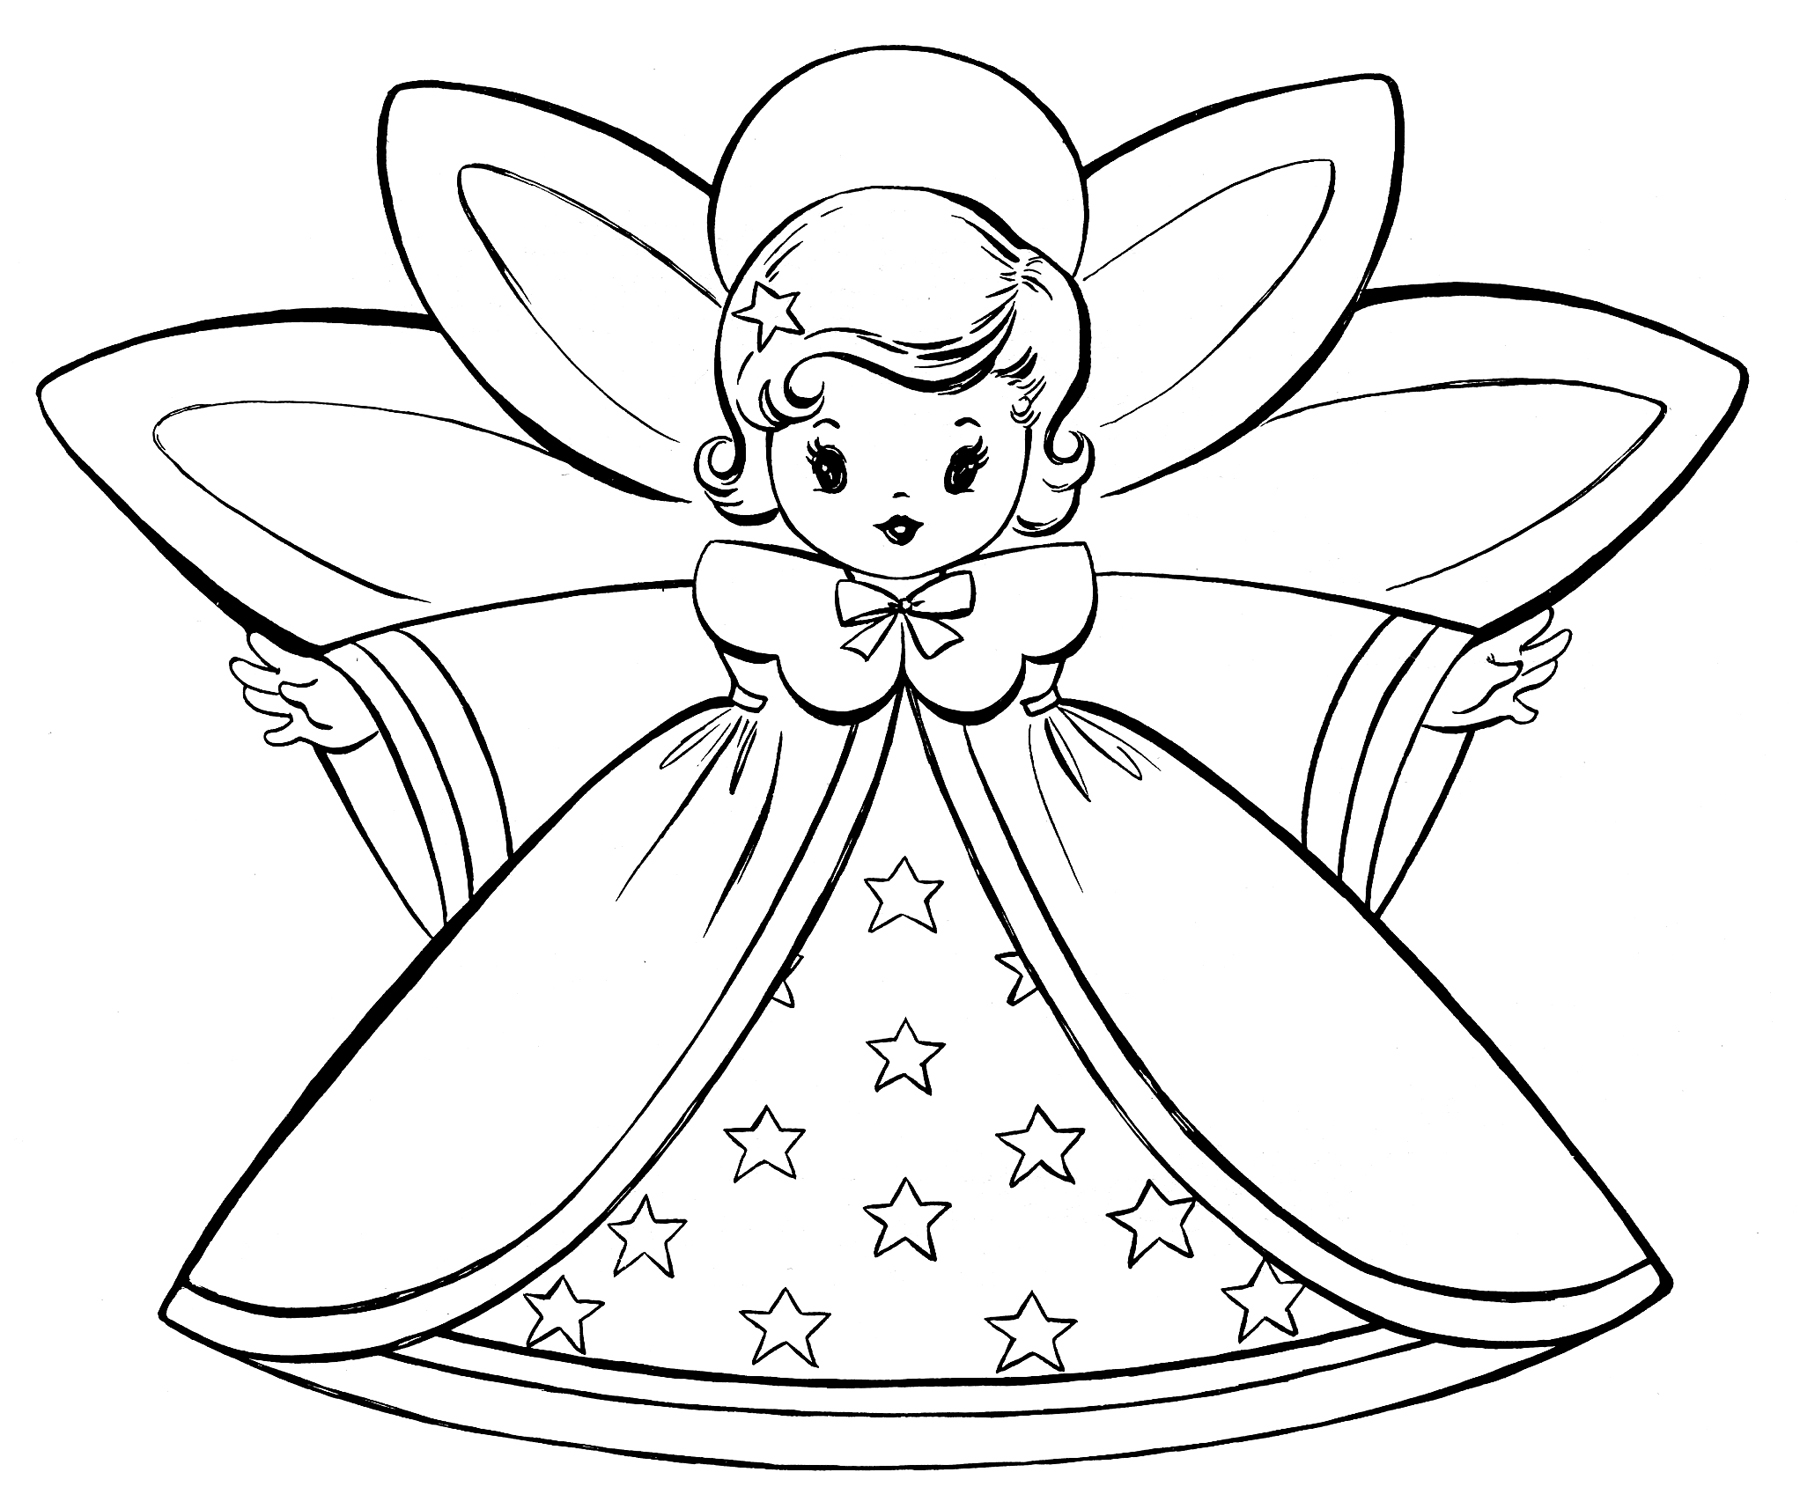 Free colouring pages for 10 year olds - Free Christmas Coloring Pages Retro Angels The Graphics Fairy Elf Coloring Pages Christmas Fairy Coloring Pages